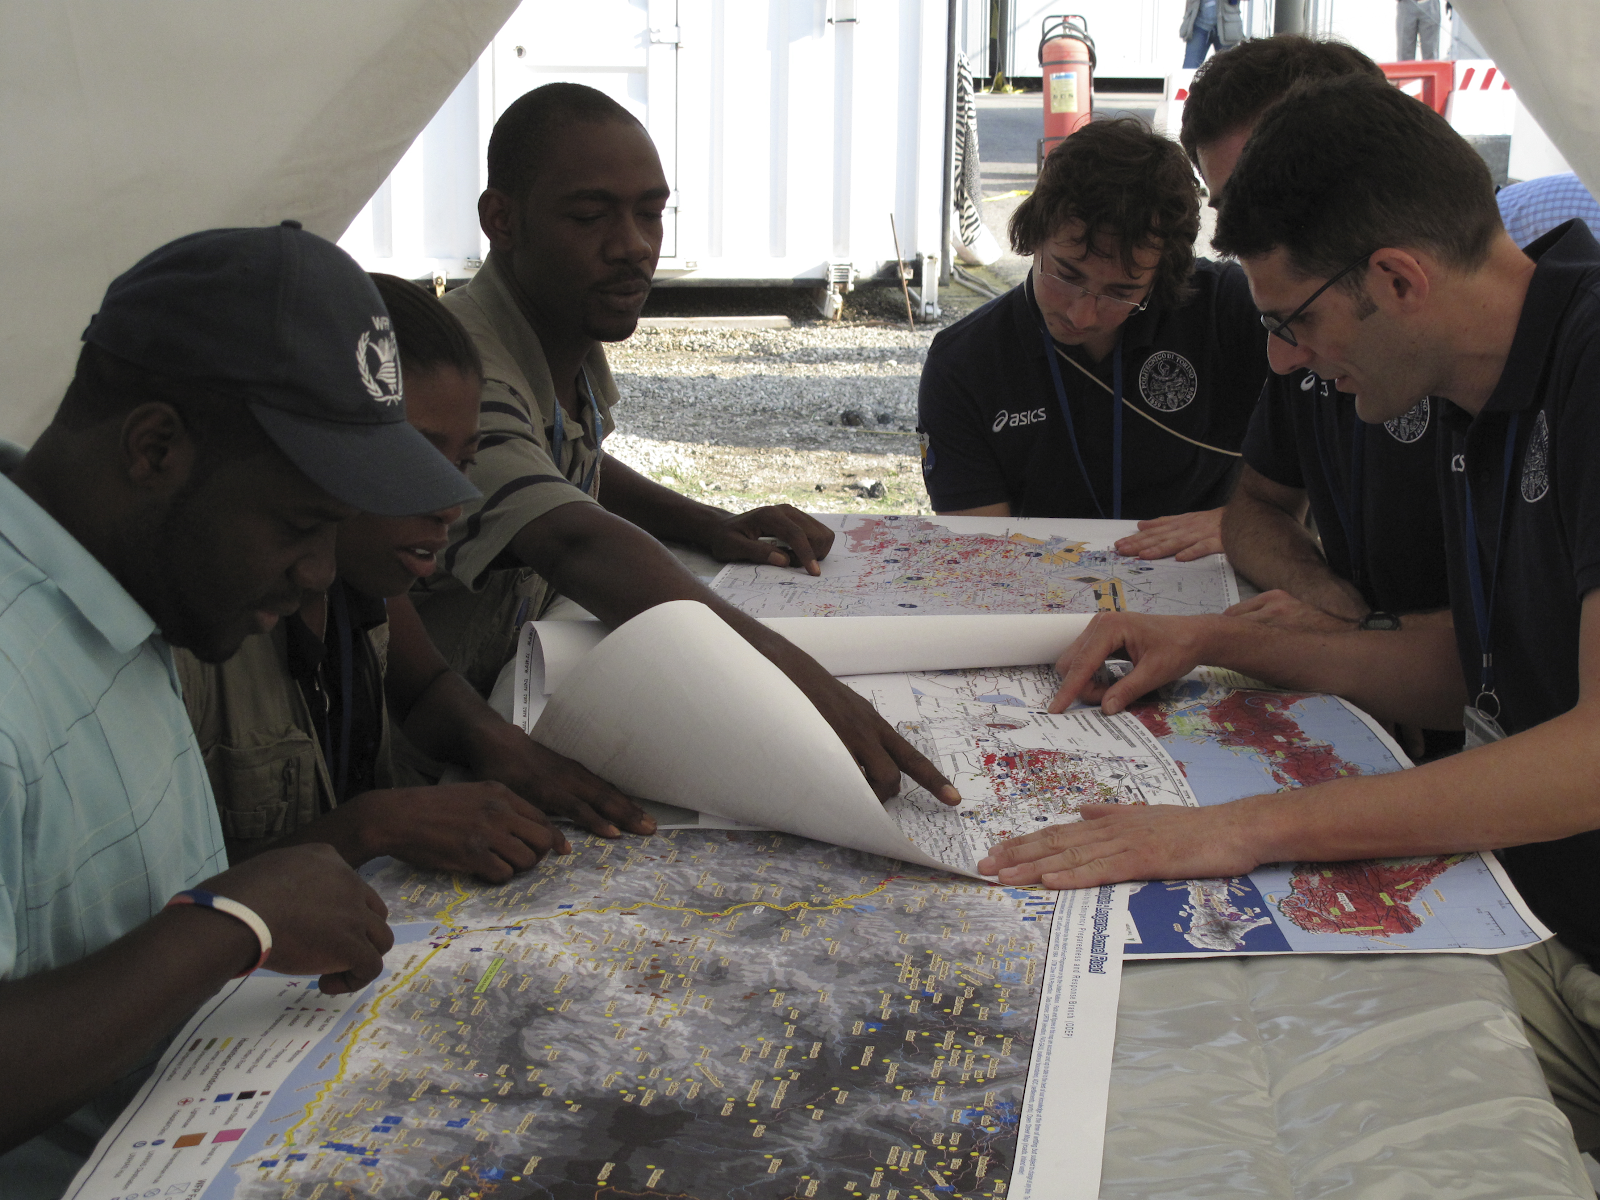 Humanitarians on the field using maps.